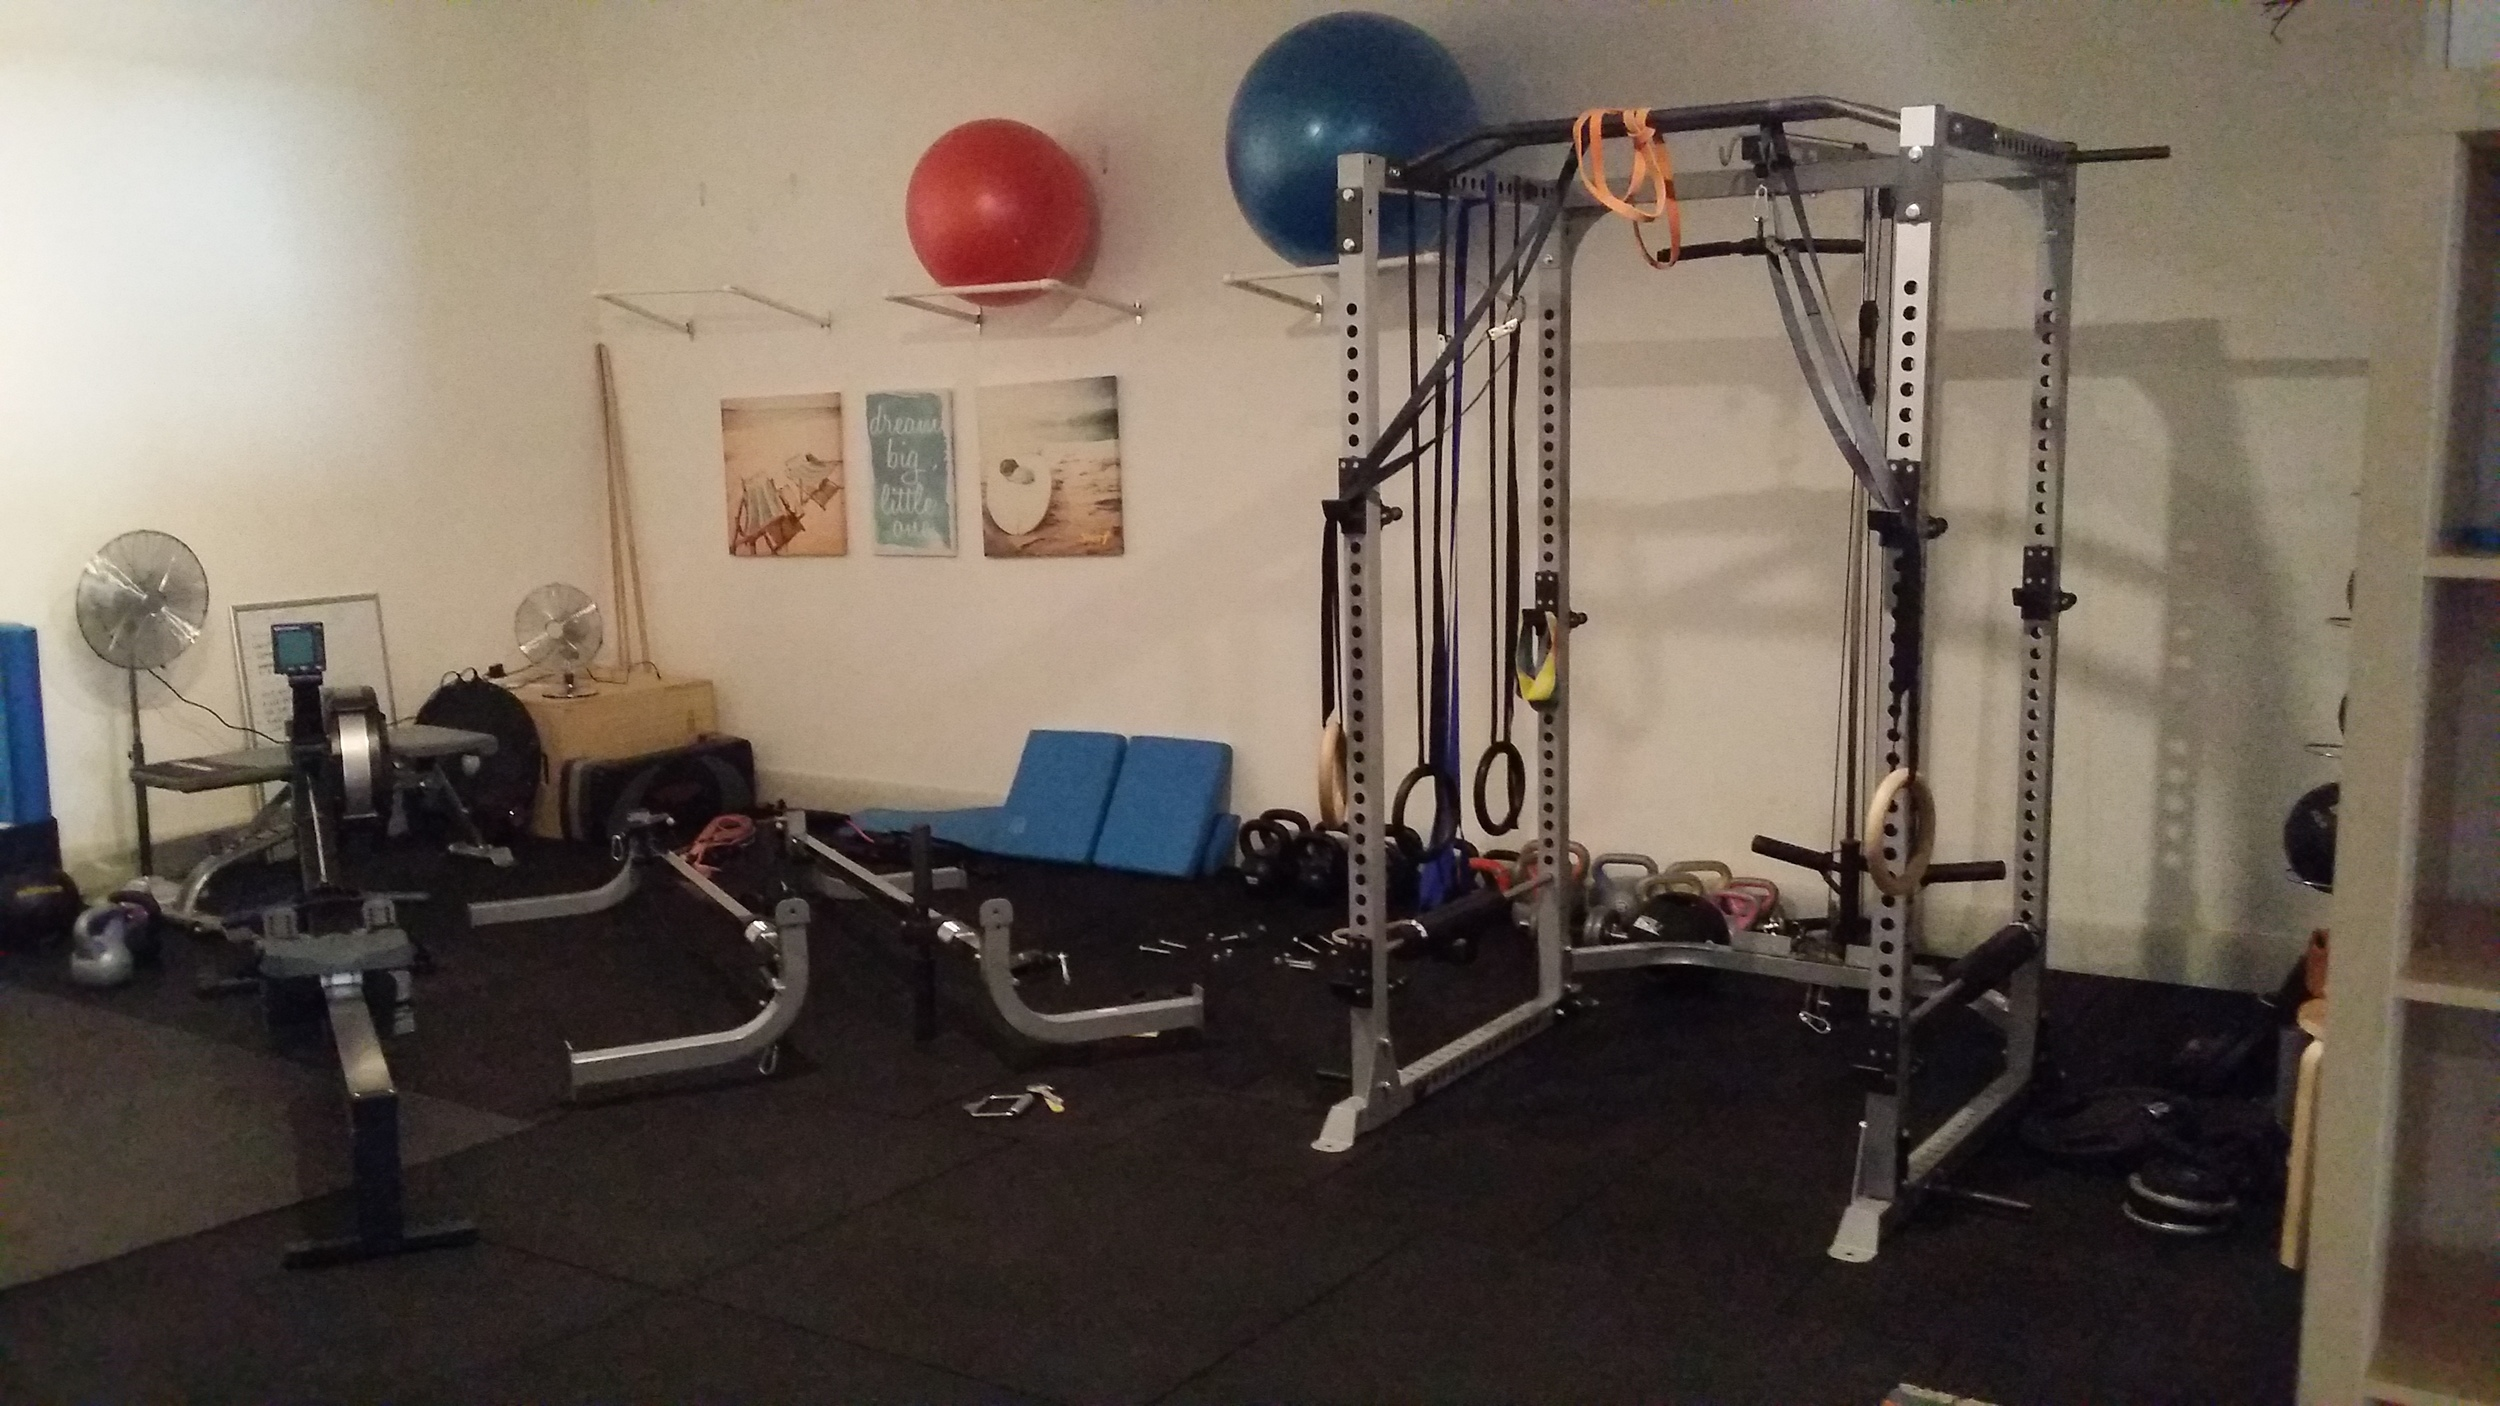 Moov Personal Training Adelaide: gym space getting relocated